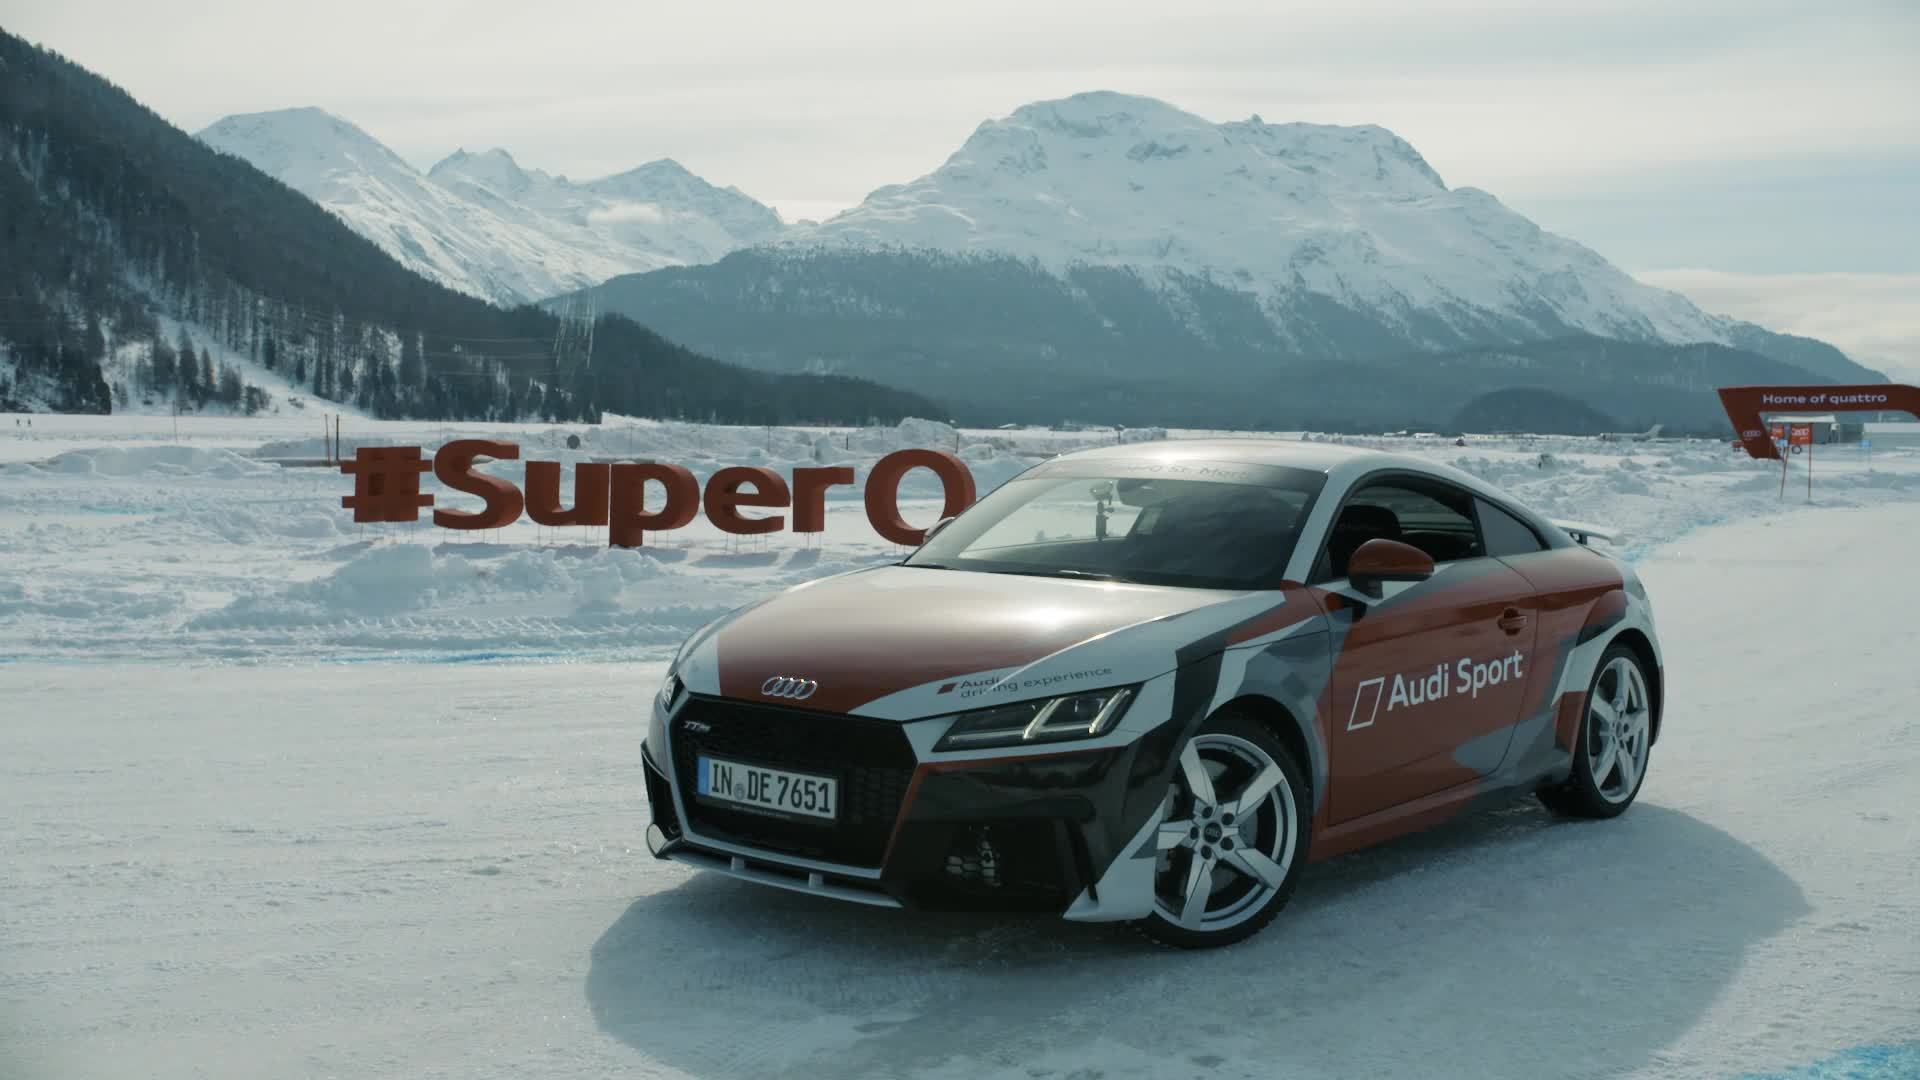 Ski-WM in St. Moritz: Audi #SuperQ Highlights